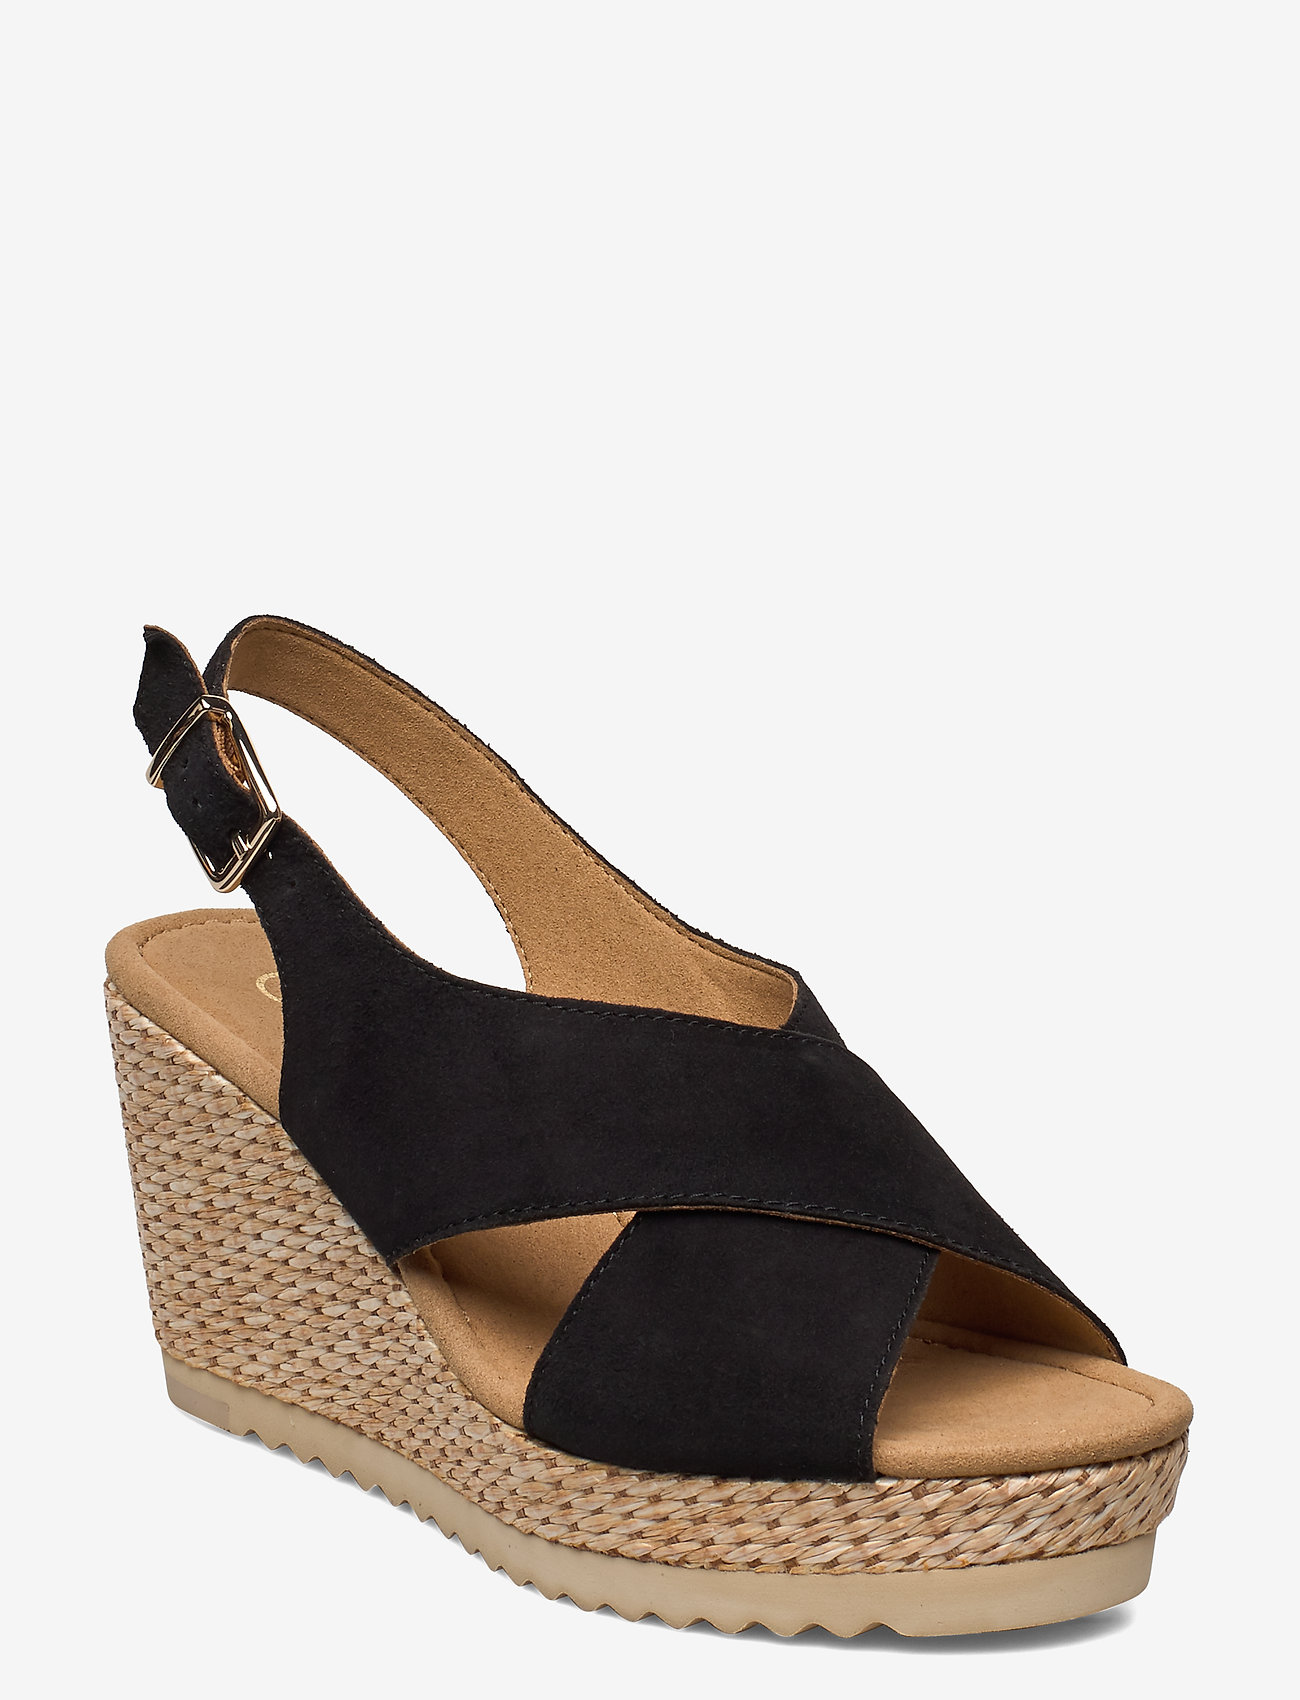 Gabor - sandals - espadrilles met sleehak - black - 0